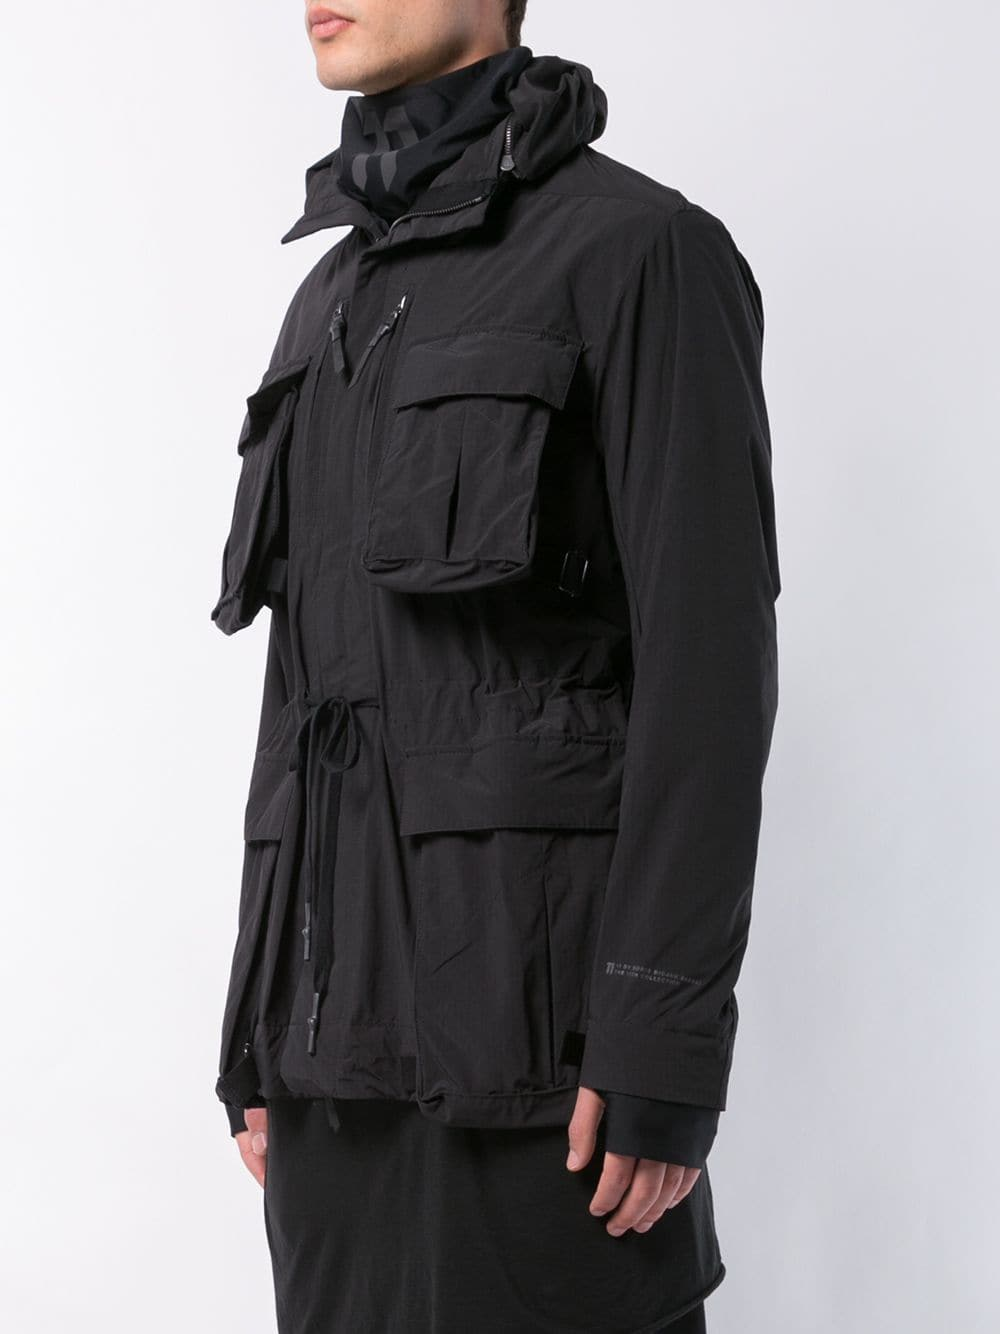 11 BY BORIS BIDJAN SABERI MEN CONVERTIBLE POCKET FIELD JACKET